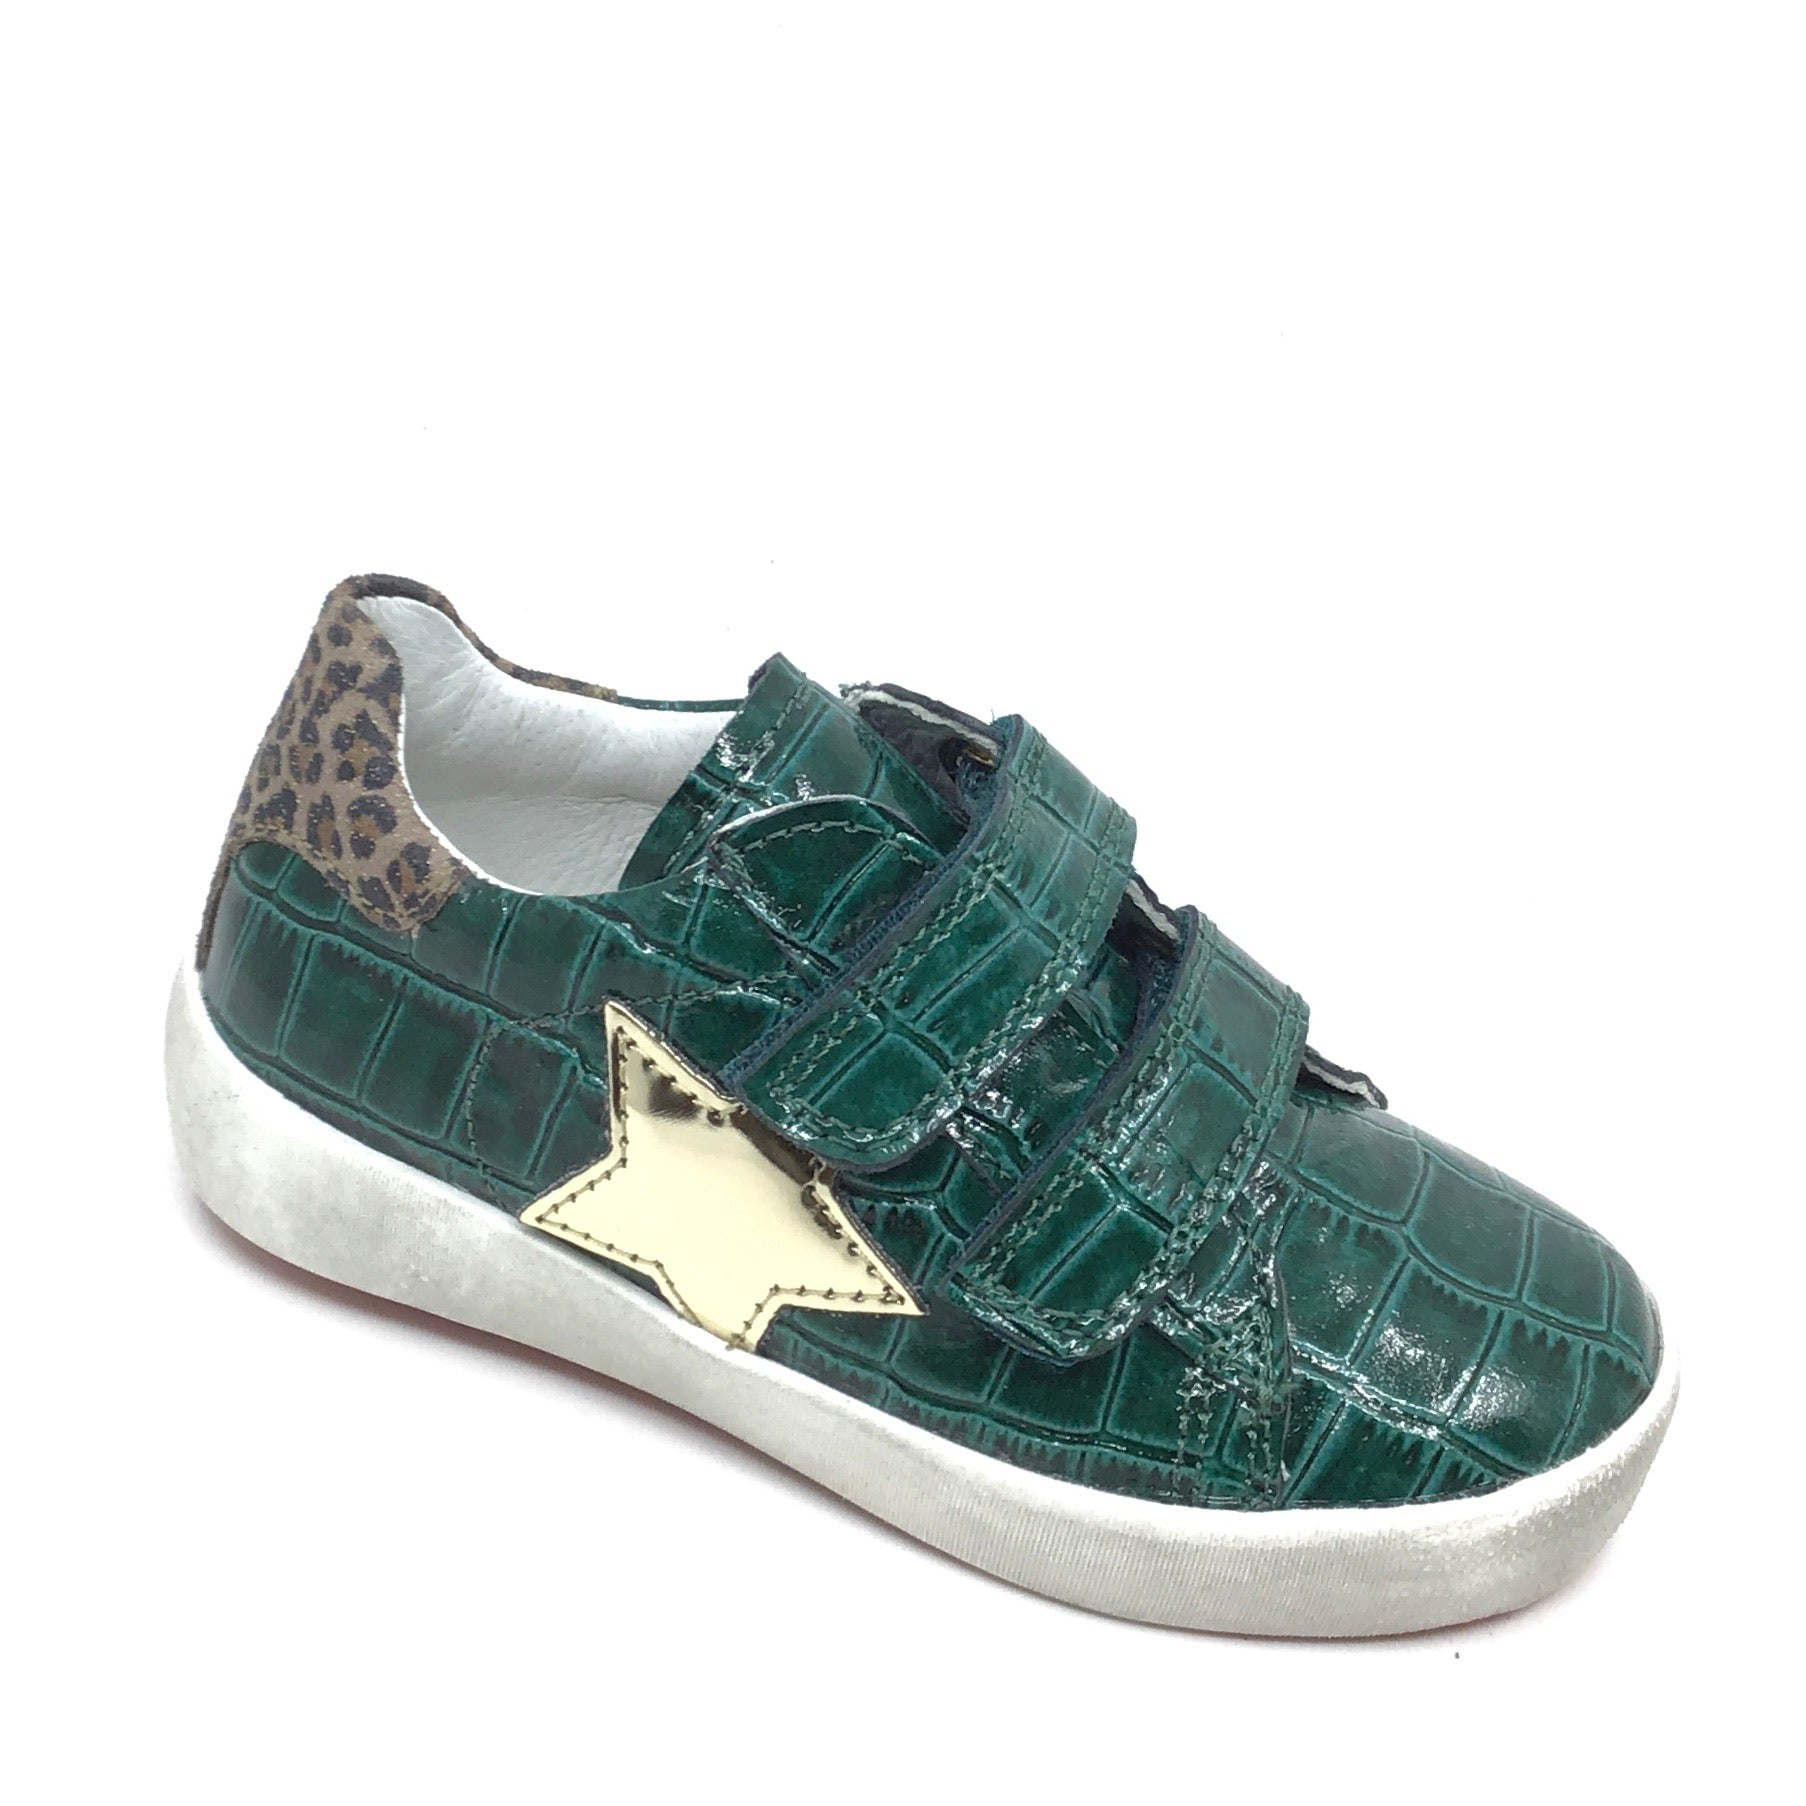 Naturino Green Alligator Skin Sneaker with Star